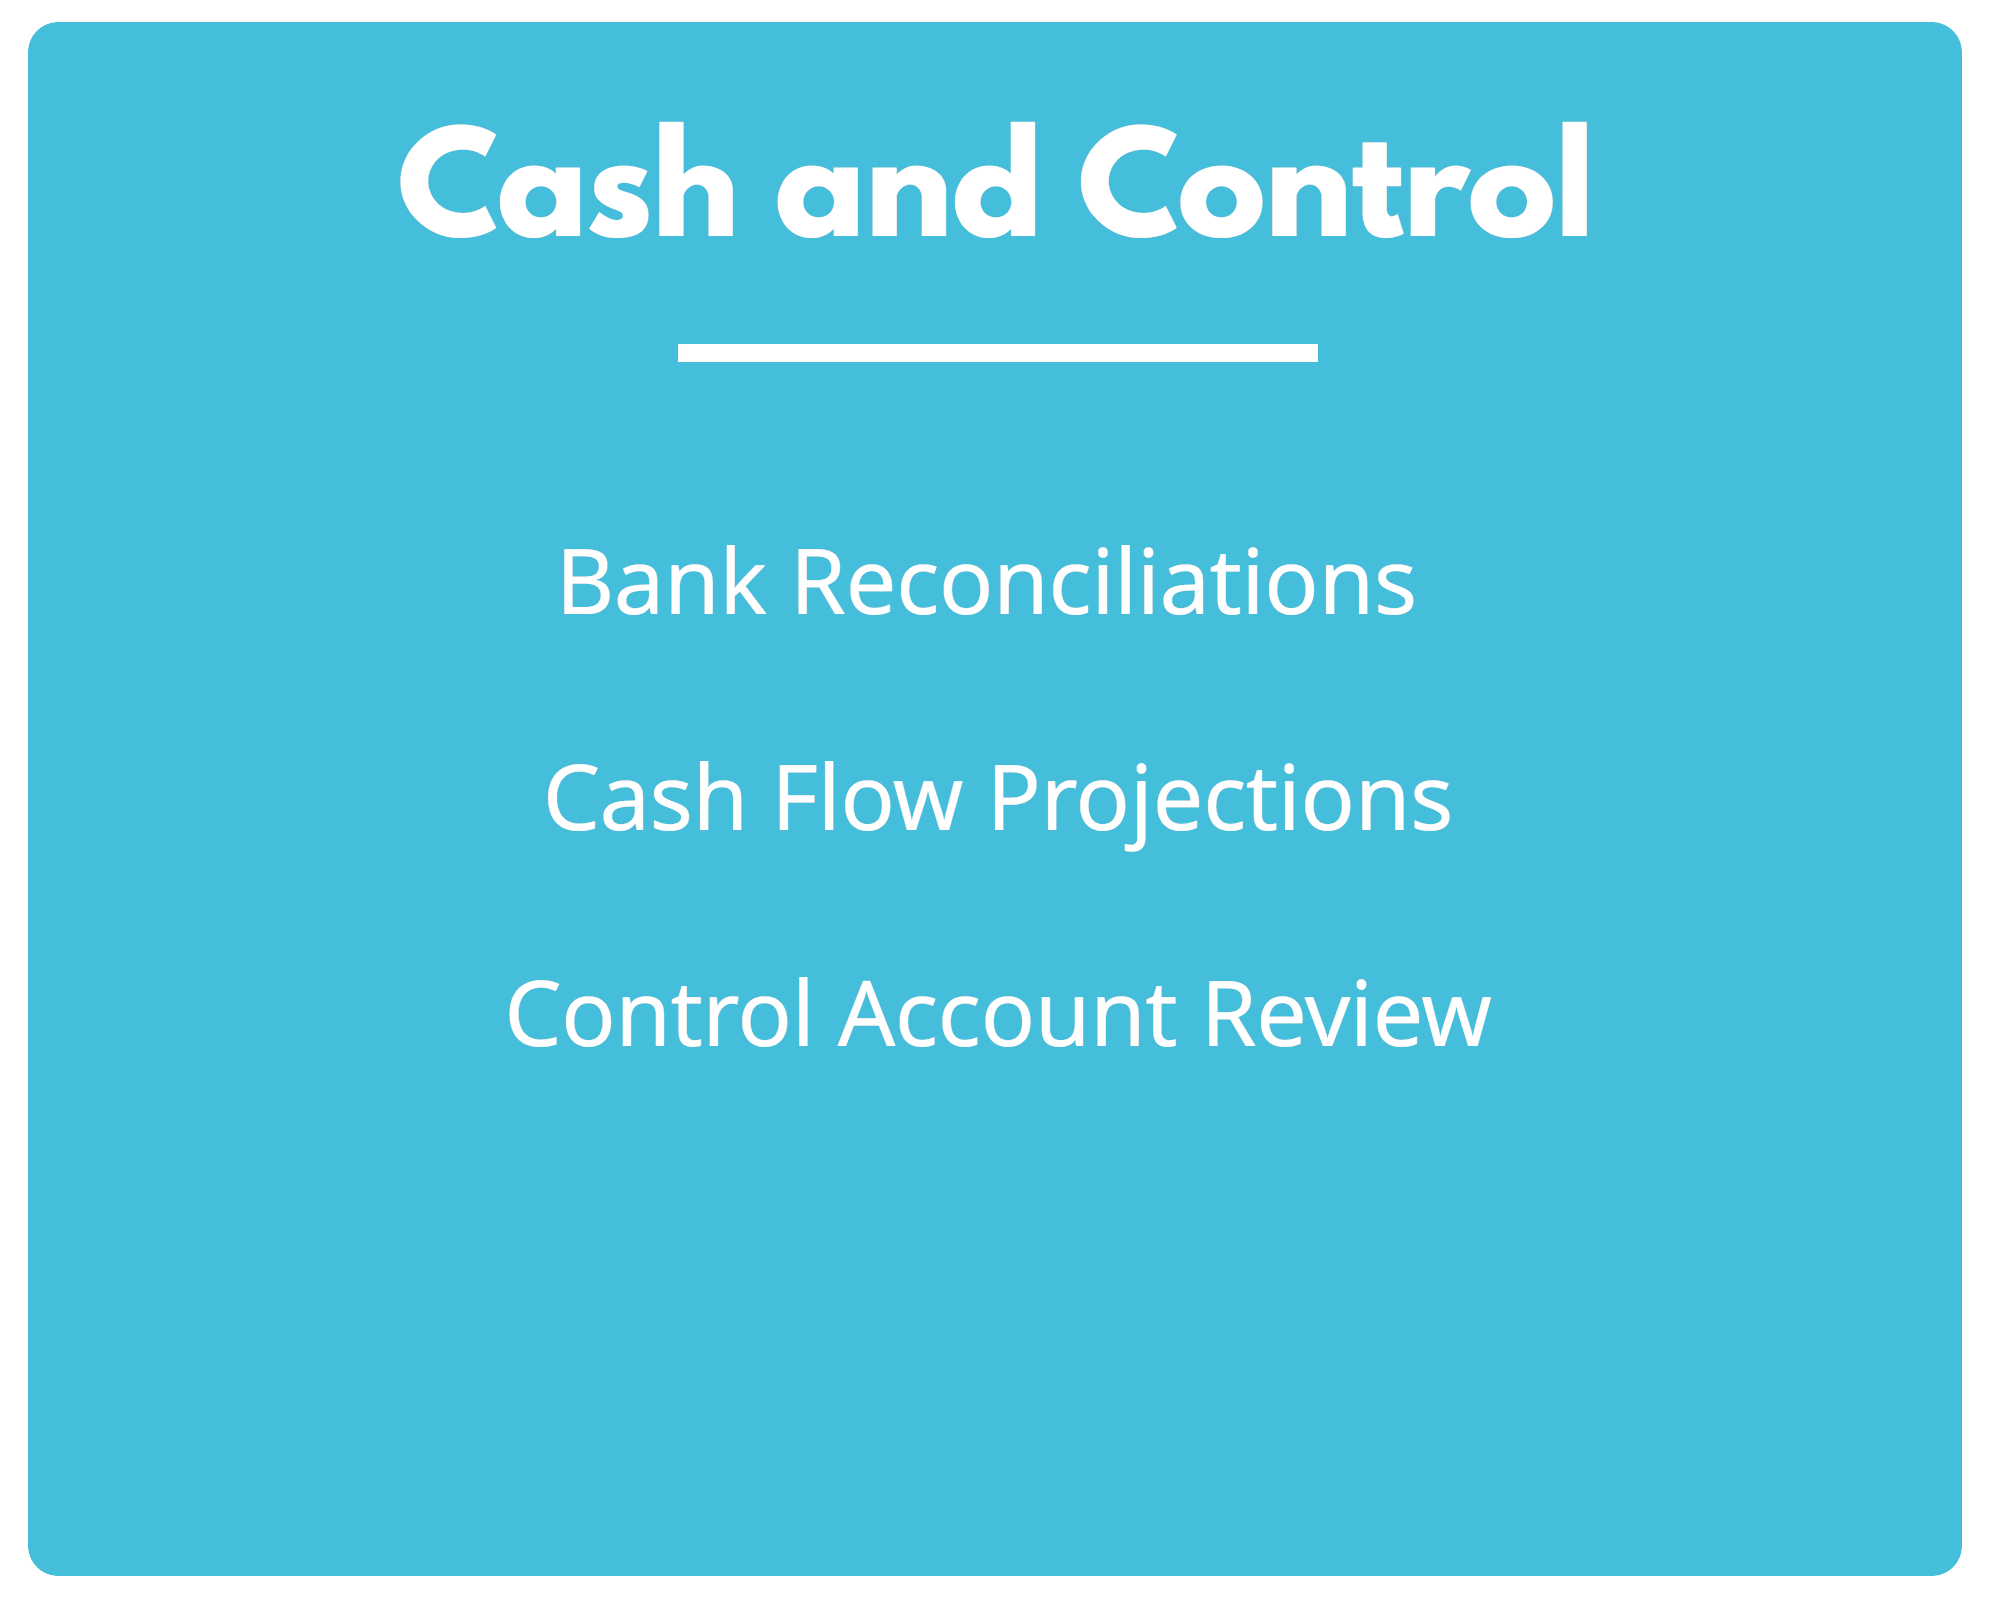 Cash and Control